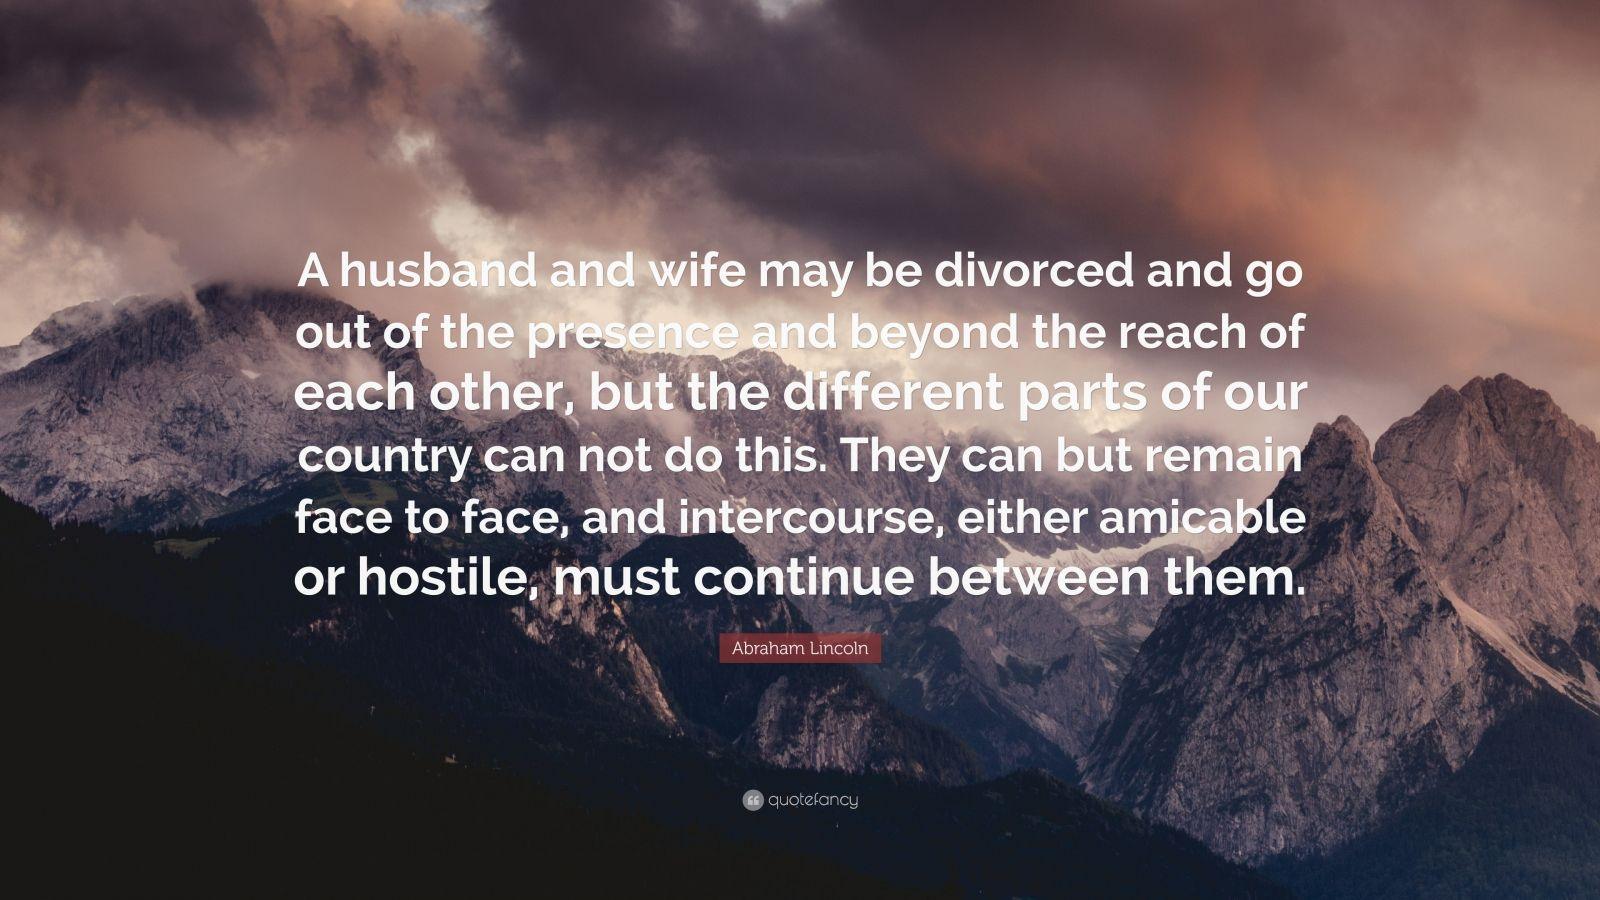 """Abraham Lincoln Quote: """"A husband and wife may be divorced and go out of the presence and beyond the reach of each other, but the different parts of our country can not do this. They can but remain face to face, and intercourse, either amicable or hostile, must continue between them."""""""